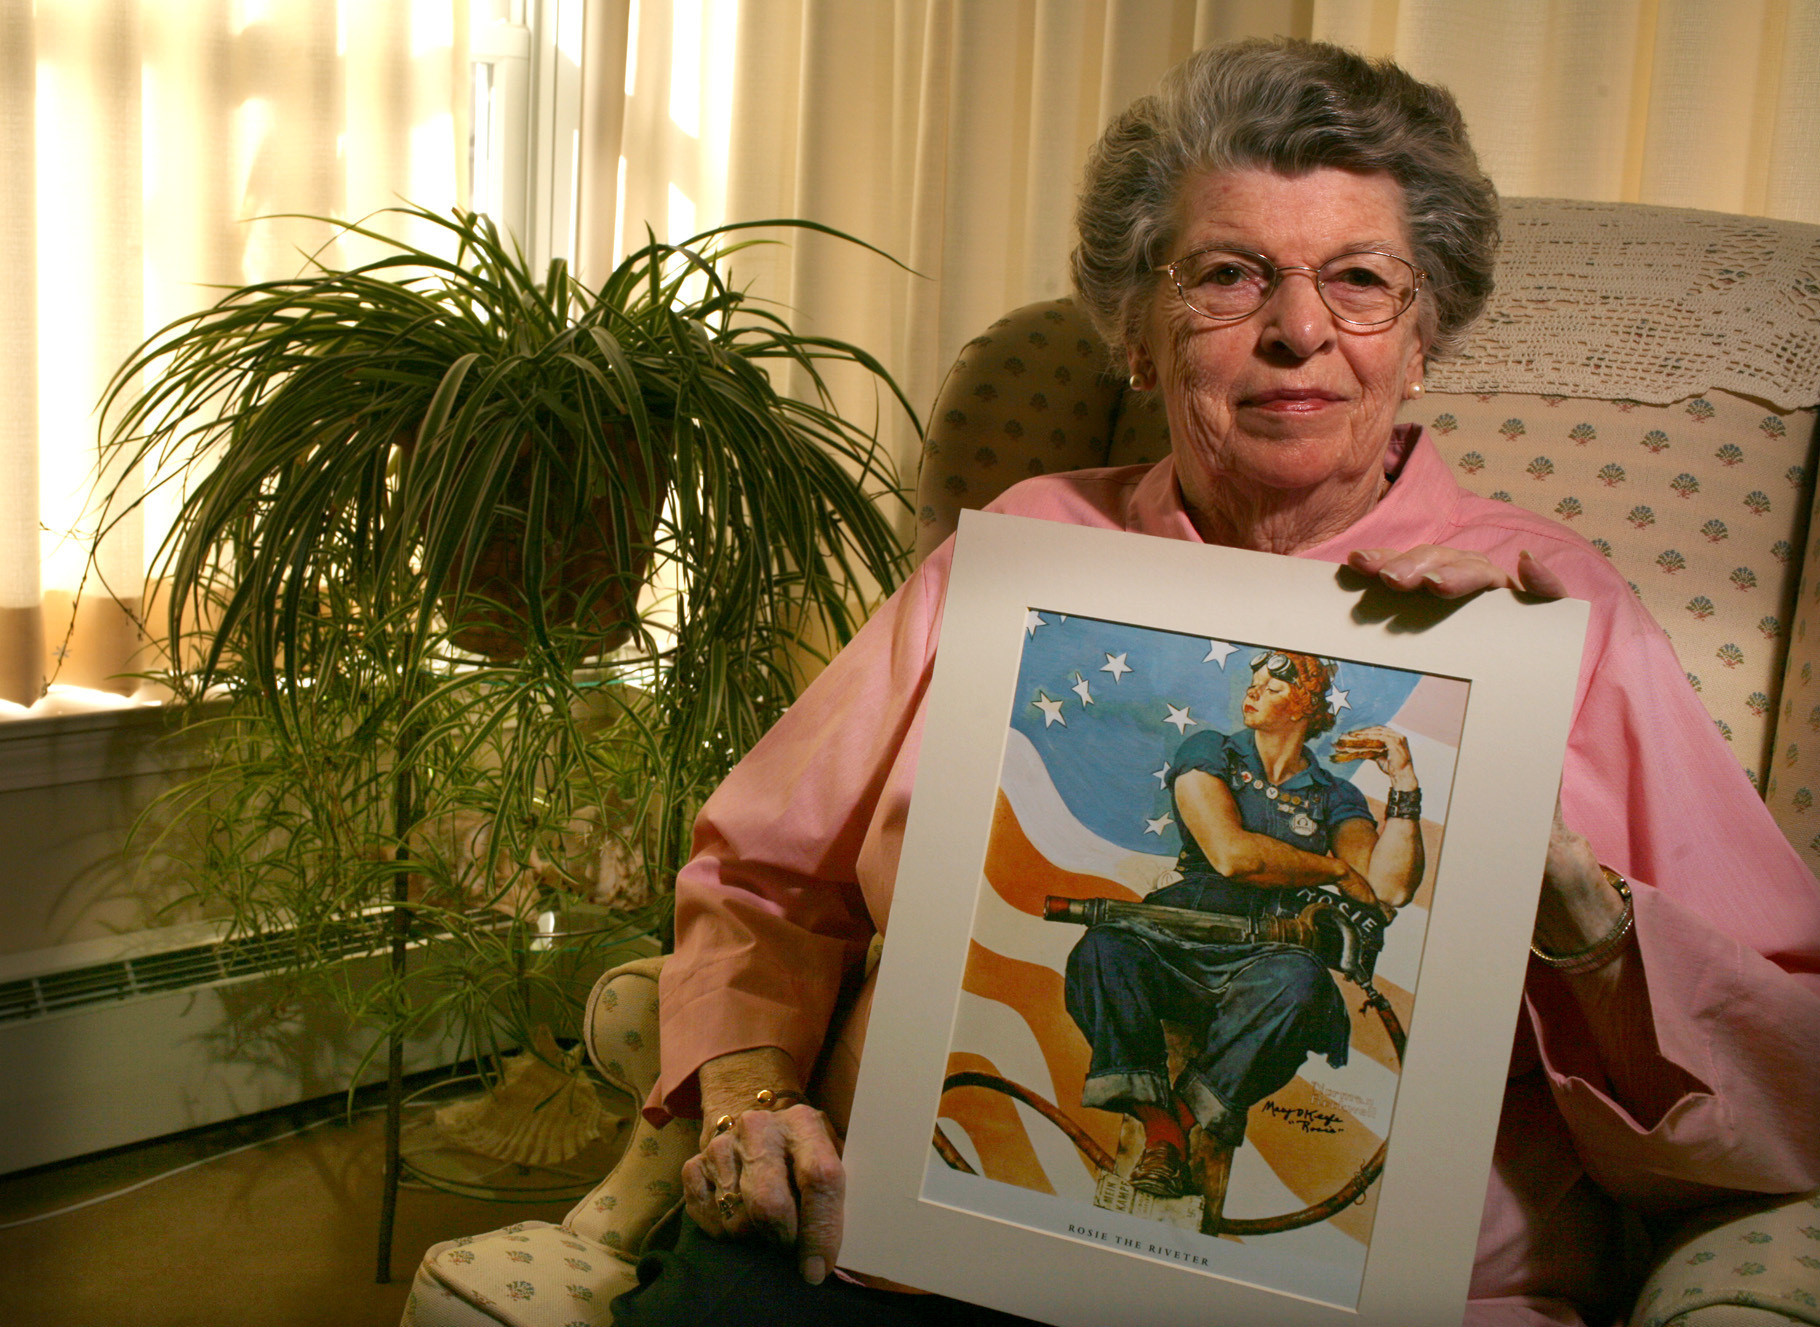 model for rockwell 39 s 39 rosie the riveter 39 painting dies in simsbury at 92 hartford courant. Black Bedroom Furniture Sets. Home Design Ideas